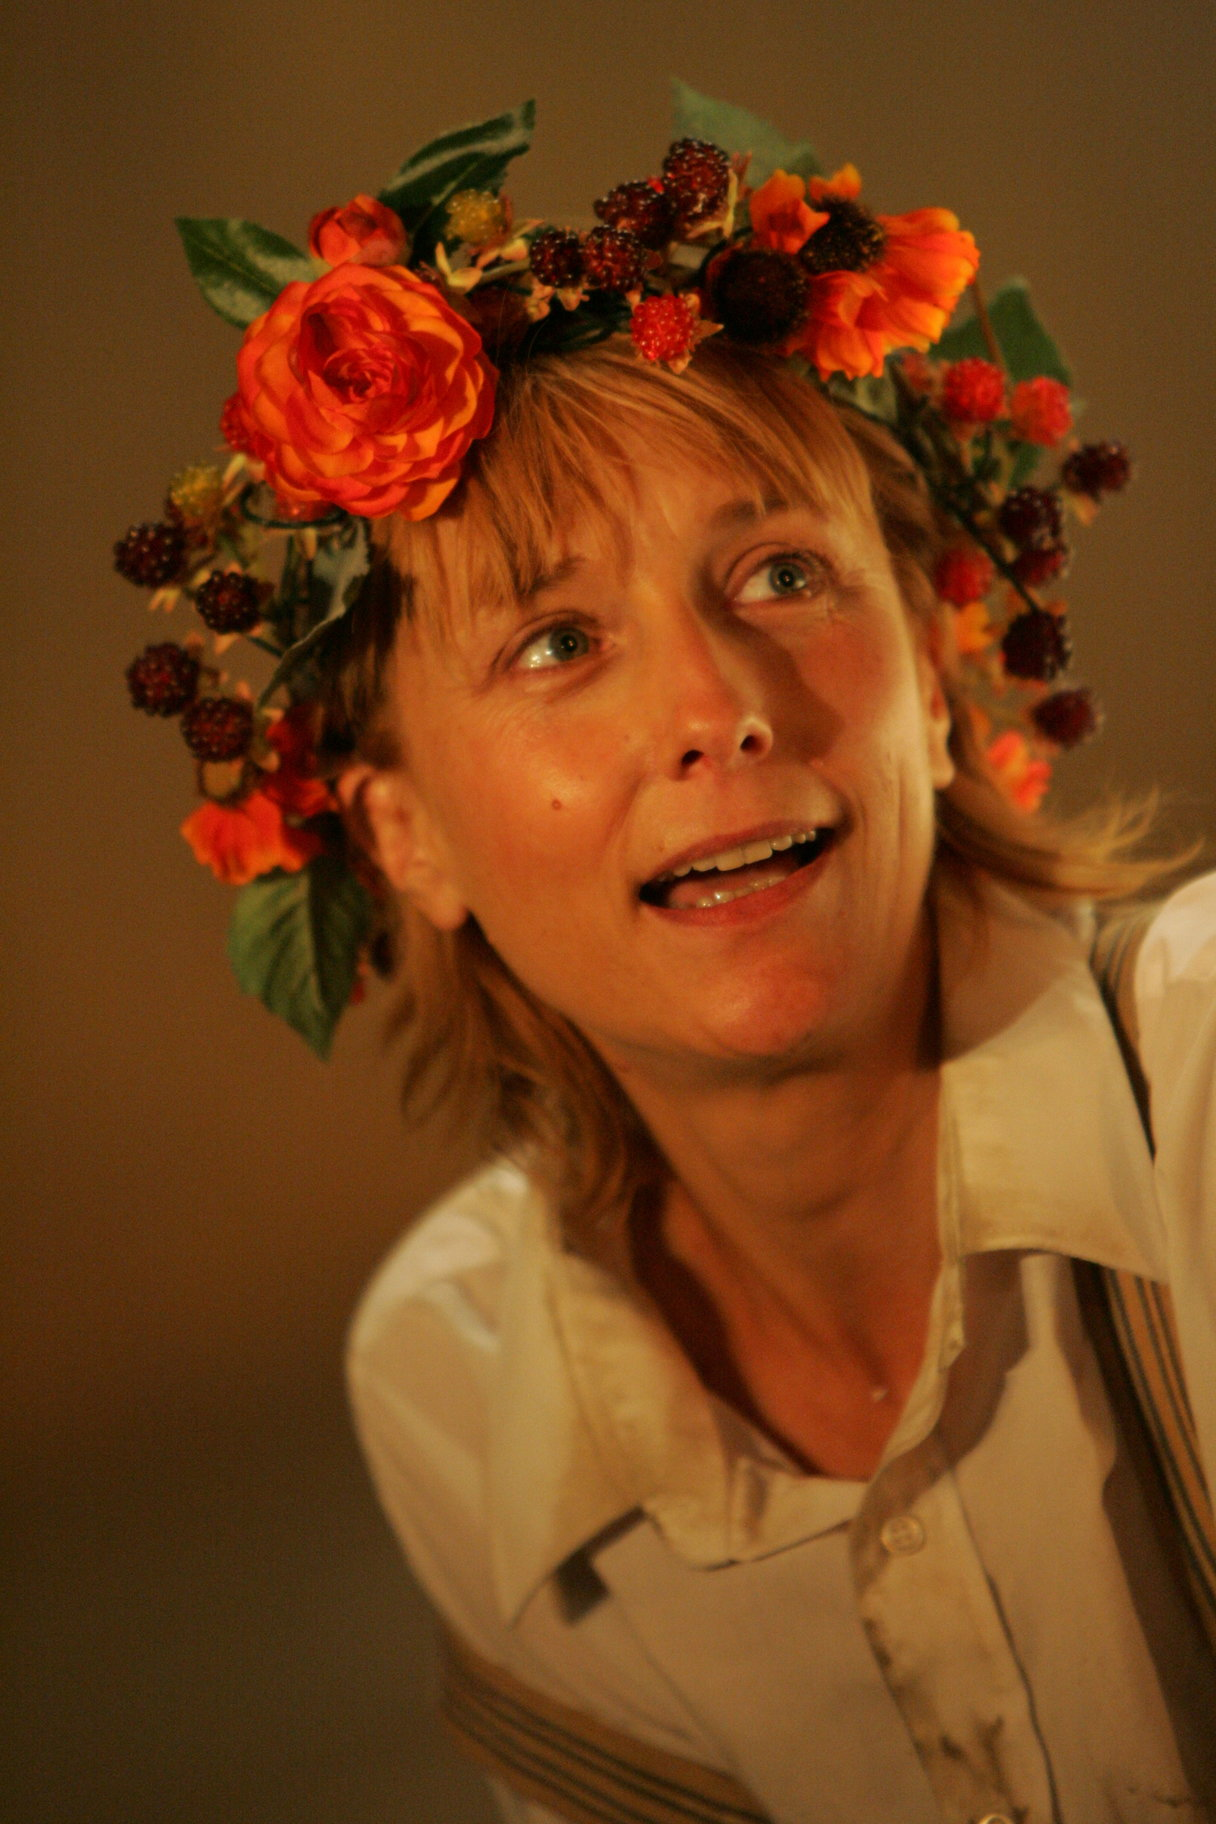 A woman in a floral garland.